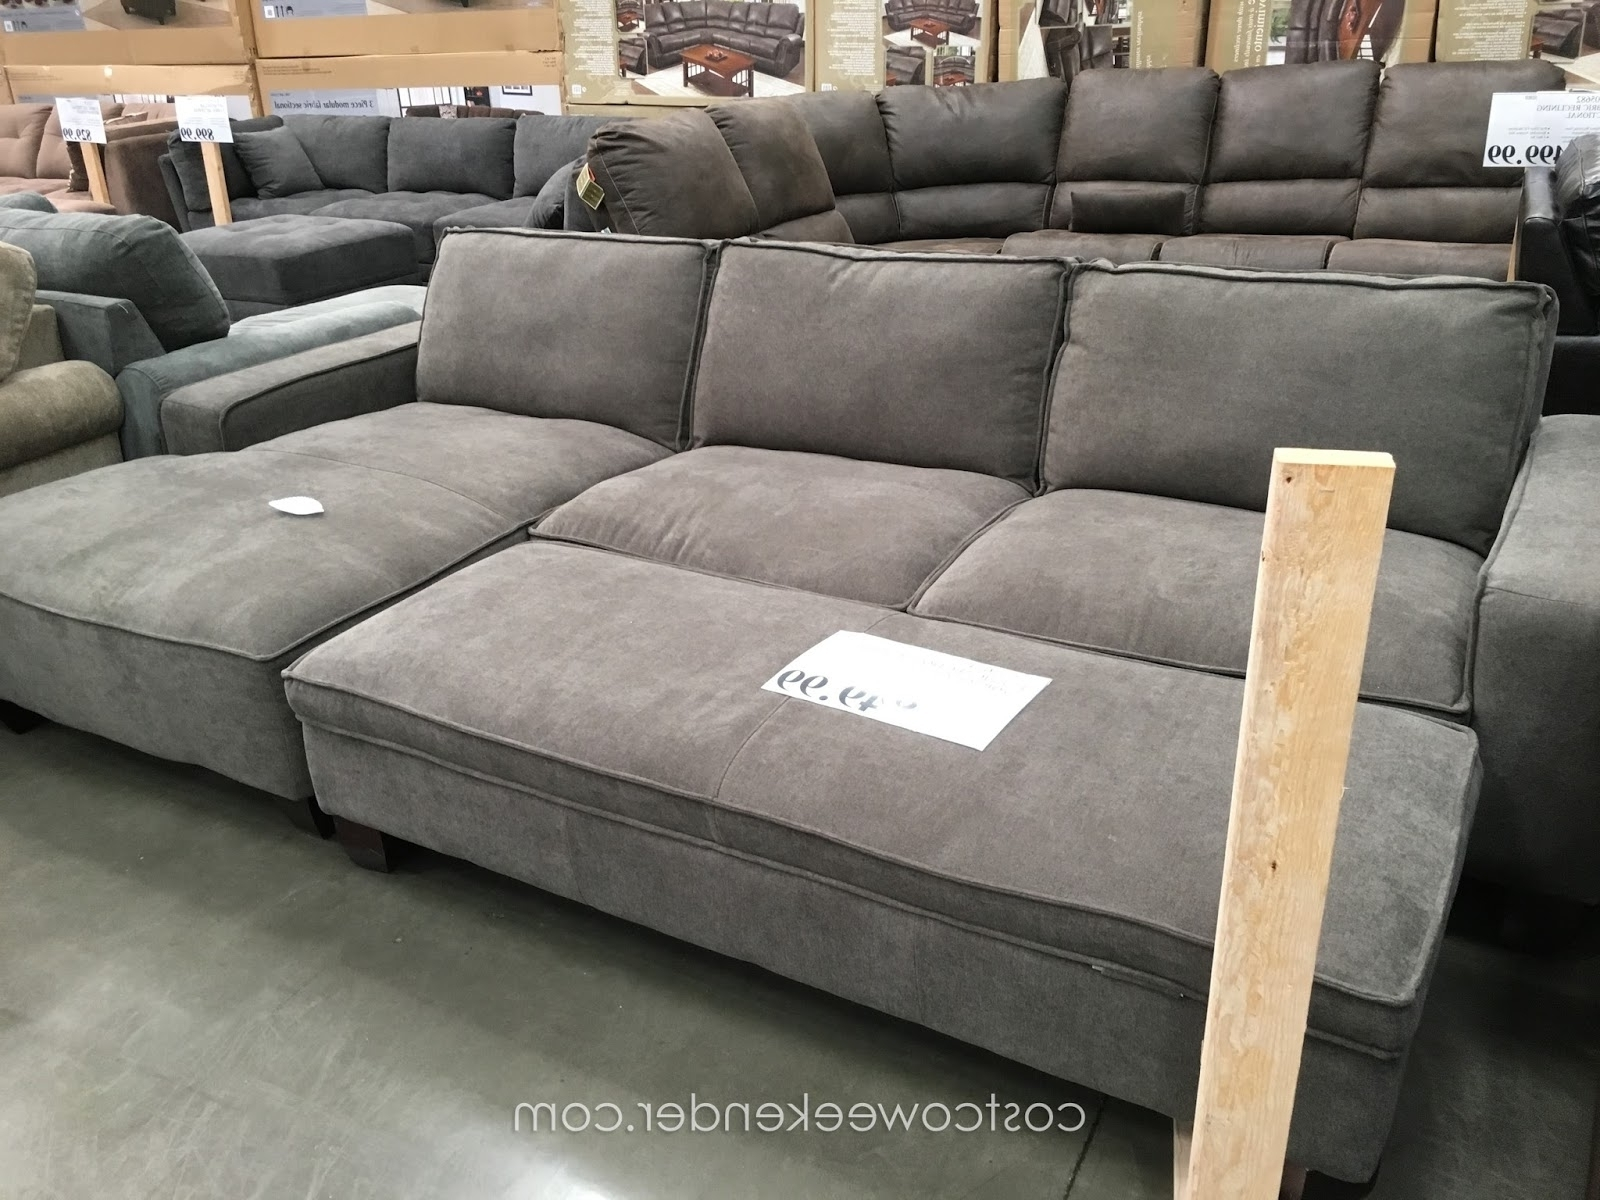 Costco Sleeper Sofa With Chaise – Mariaalcocer Pertaining To Preferred Costco Chaises (View 6 of 15)